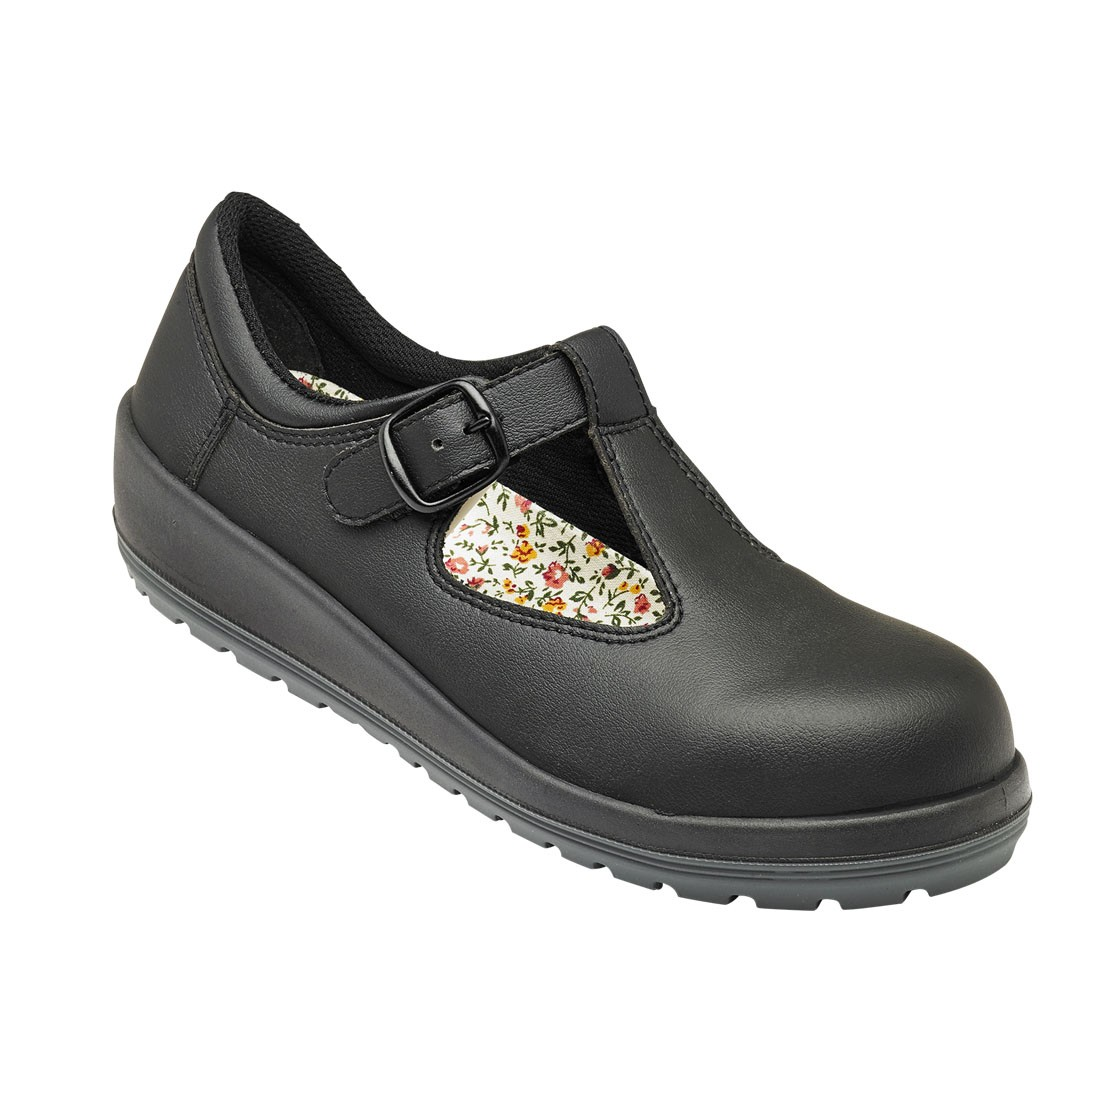 V12 Safety Boots >> Parade Batina Ladies Buckle Fastened Microfiber Black Safety Work Shoes